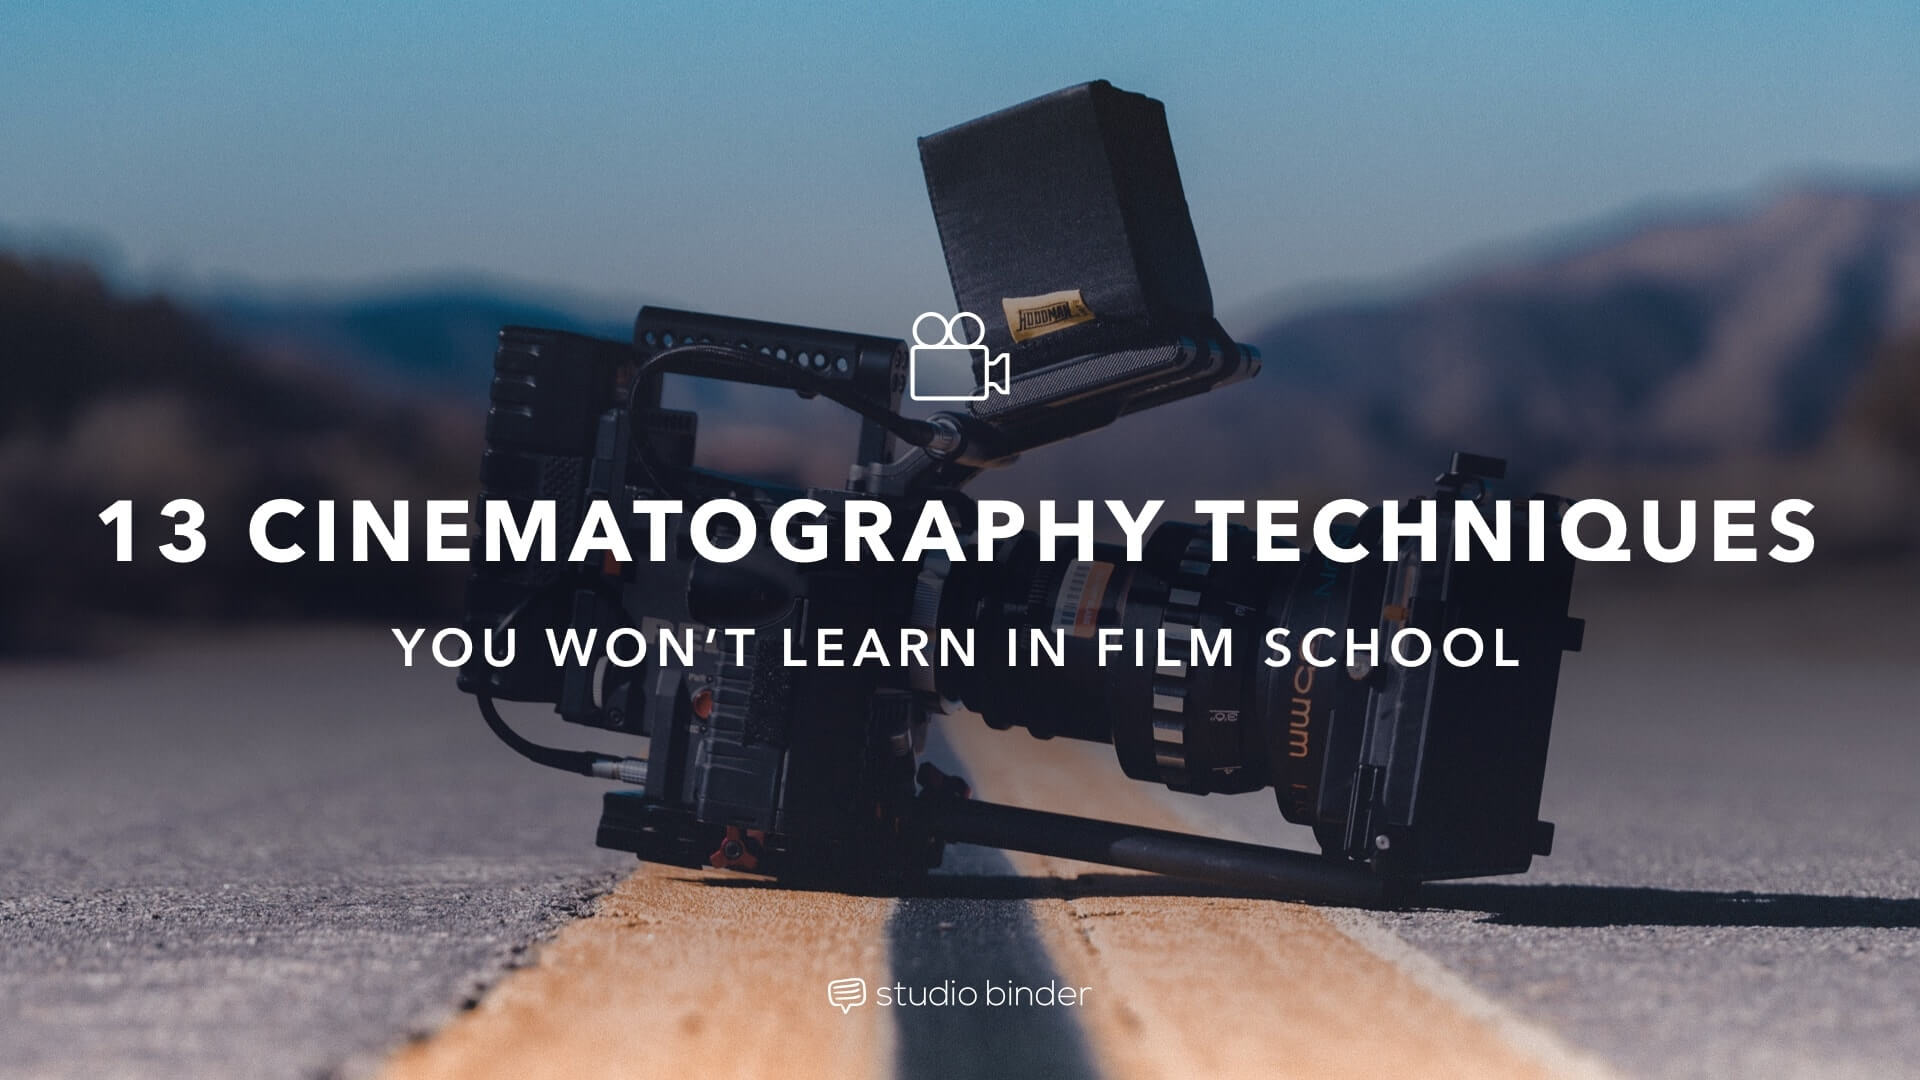 Cinematography Techniques You Won't Learn In Film School - Featured Image - StudioBinder